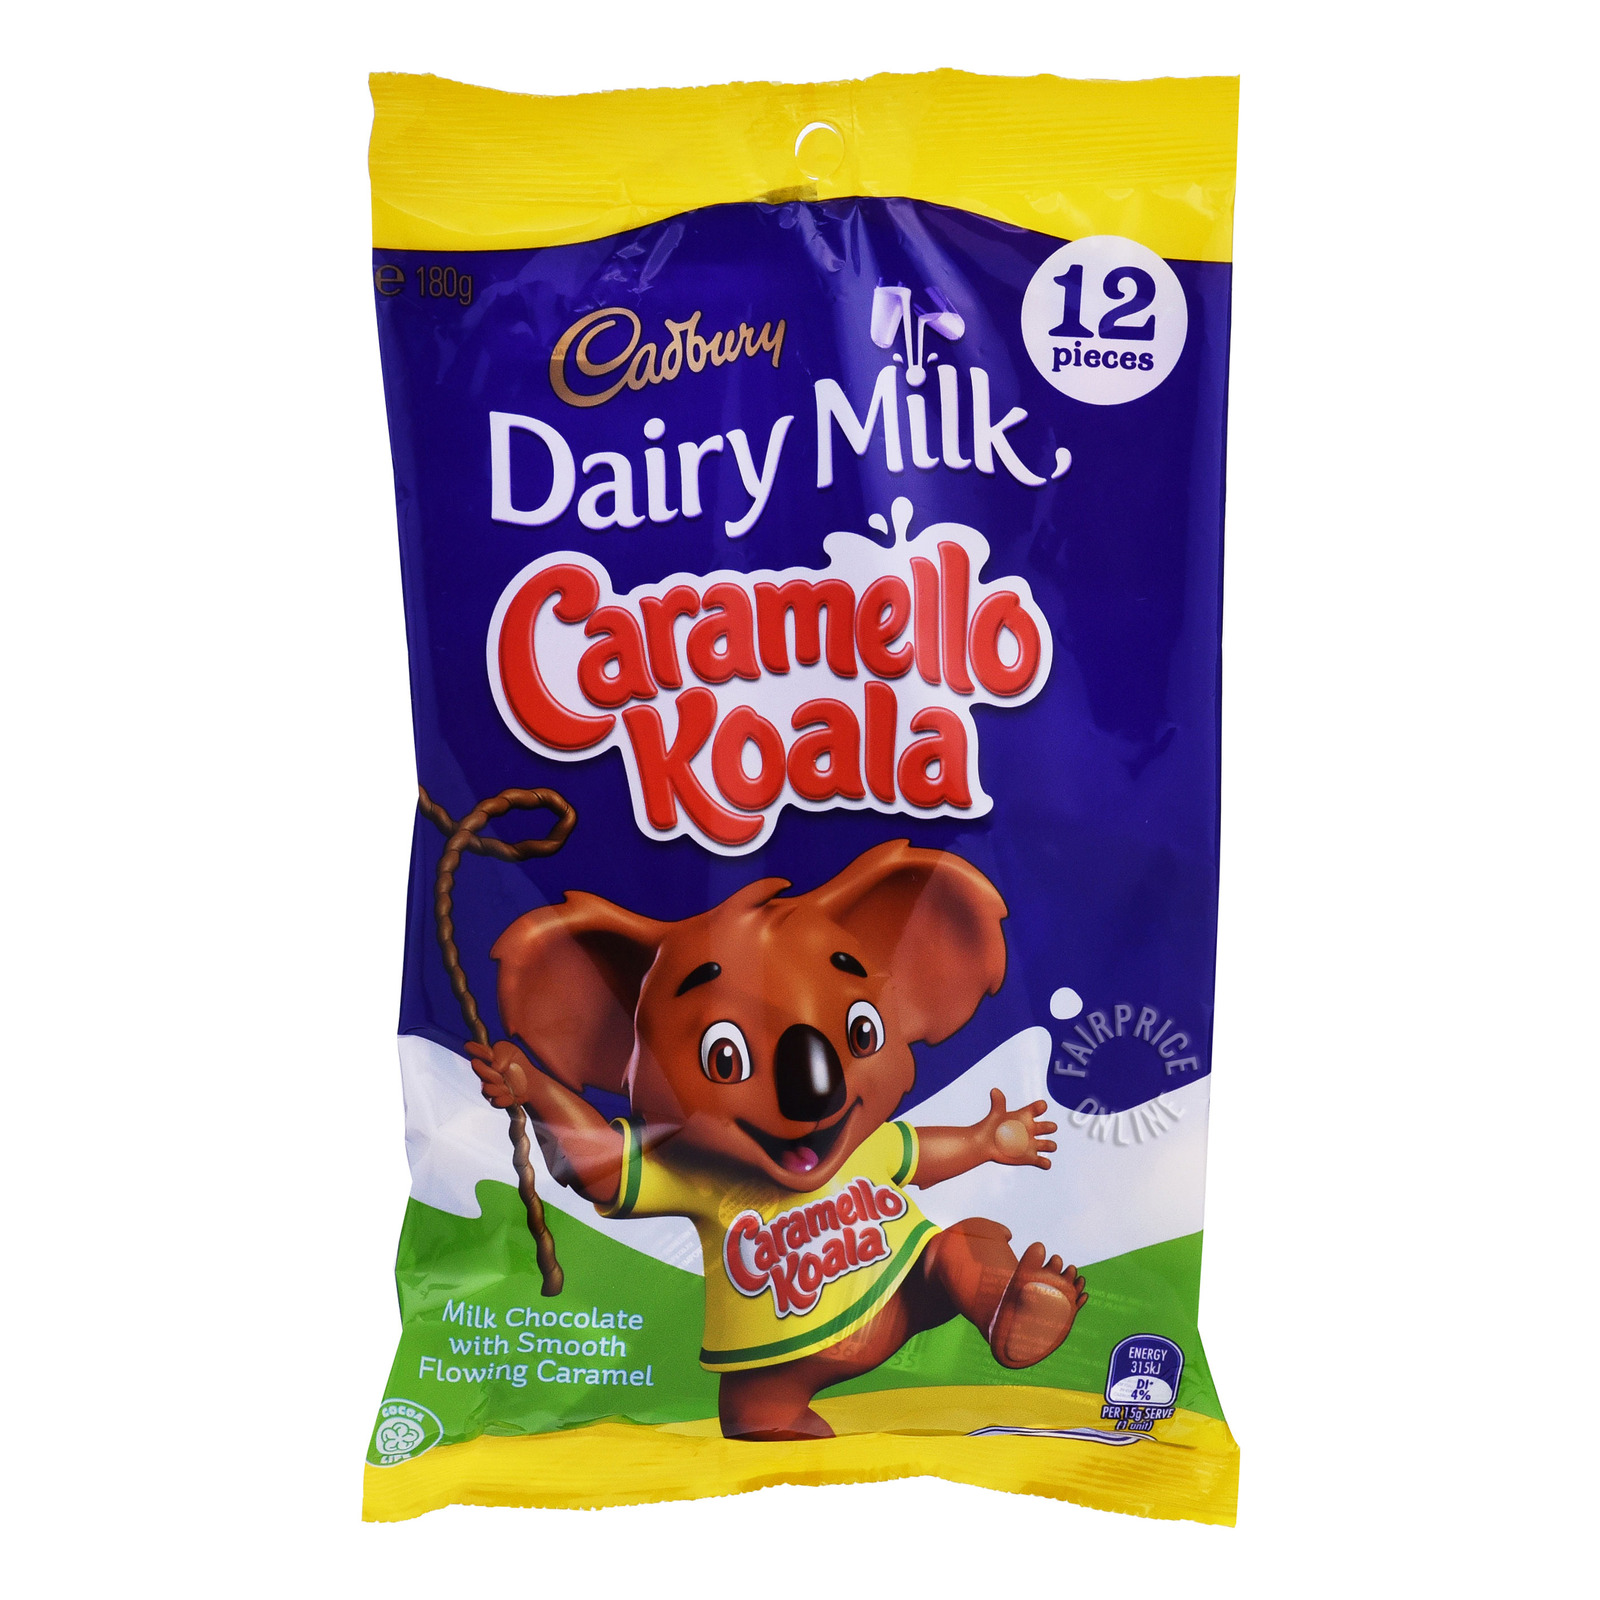 Cadburry Dairy Milk Caramello Koala Sharepack - Milk Chocolate with Smooth Flowing Caramel